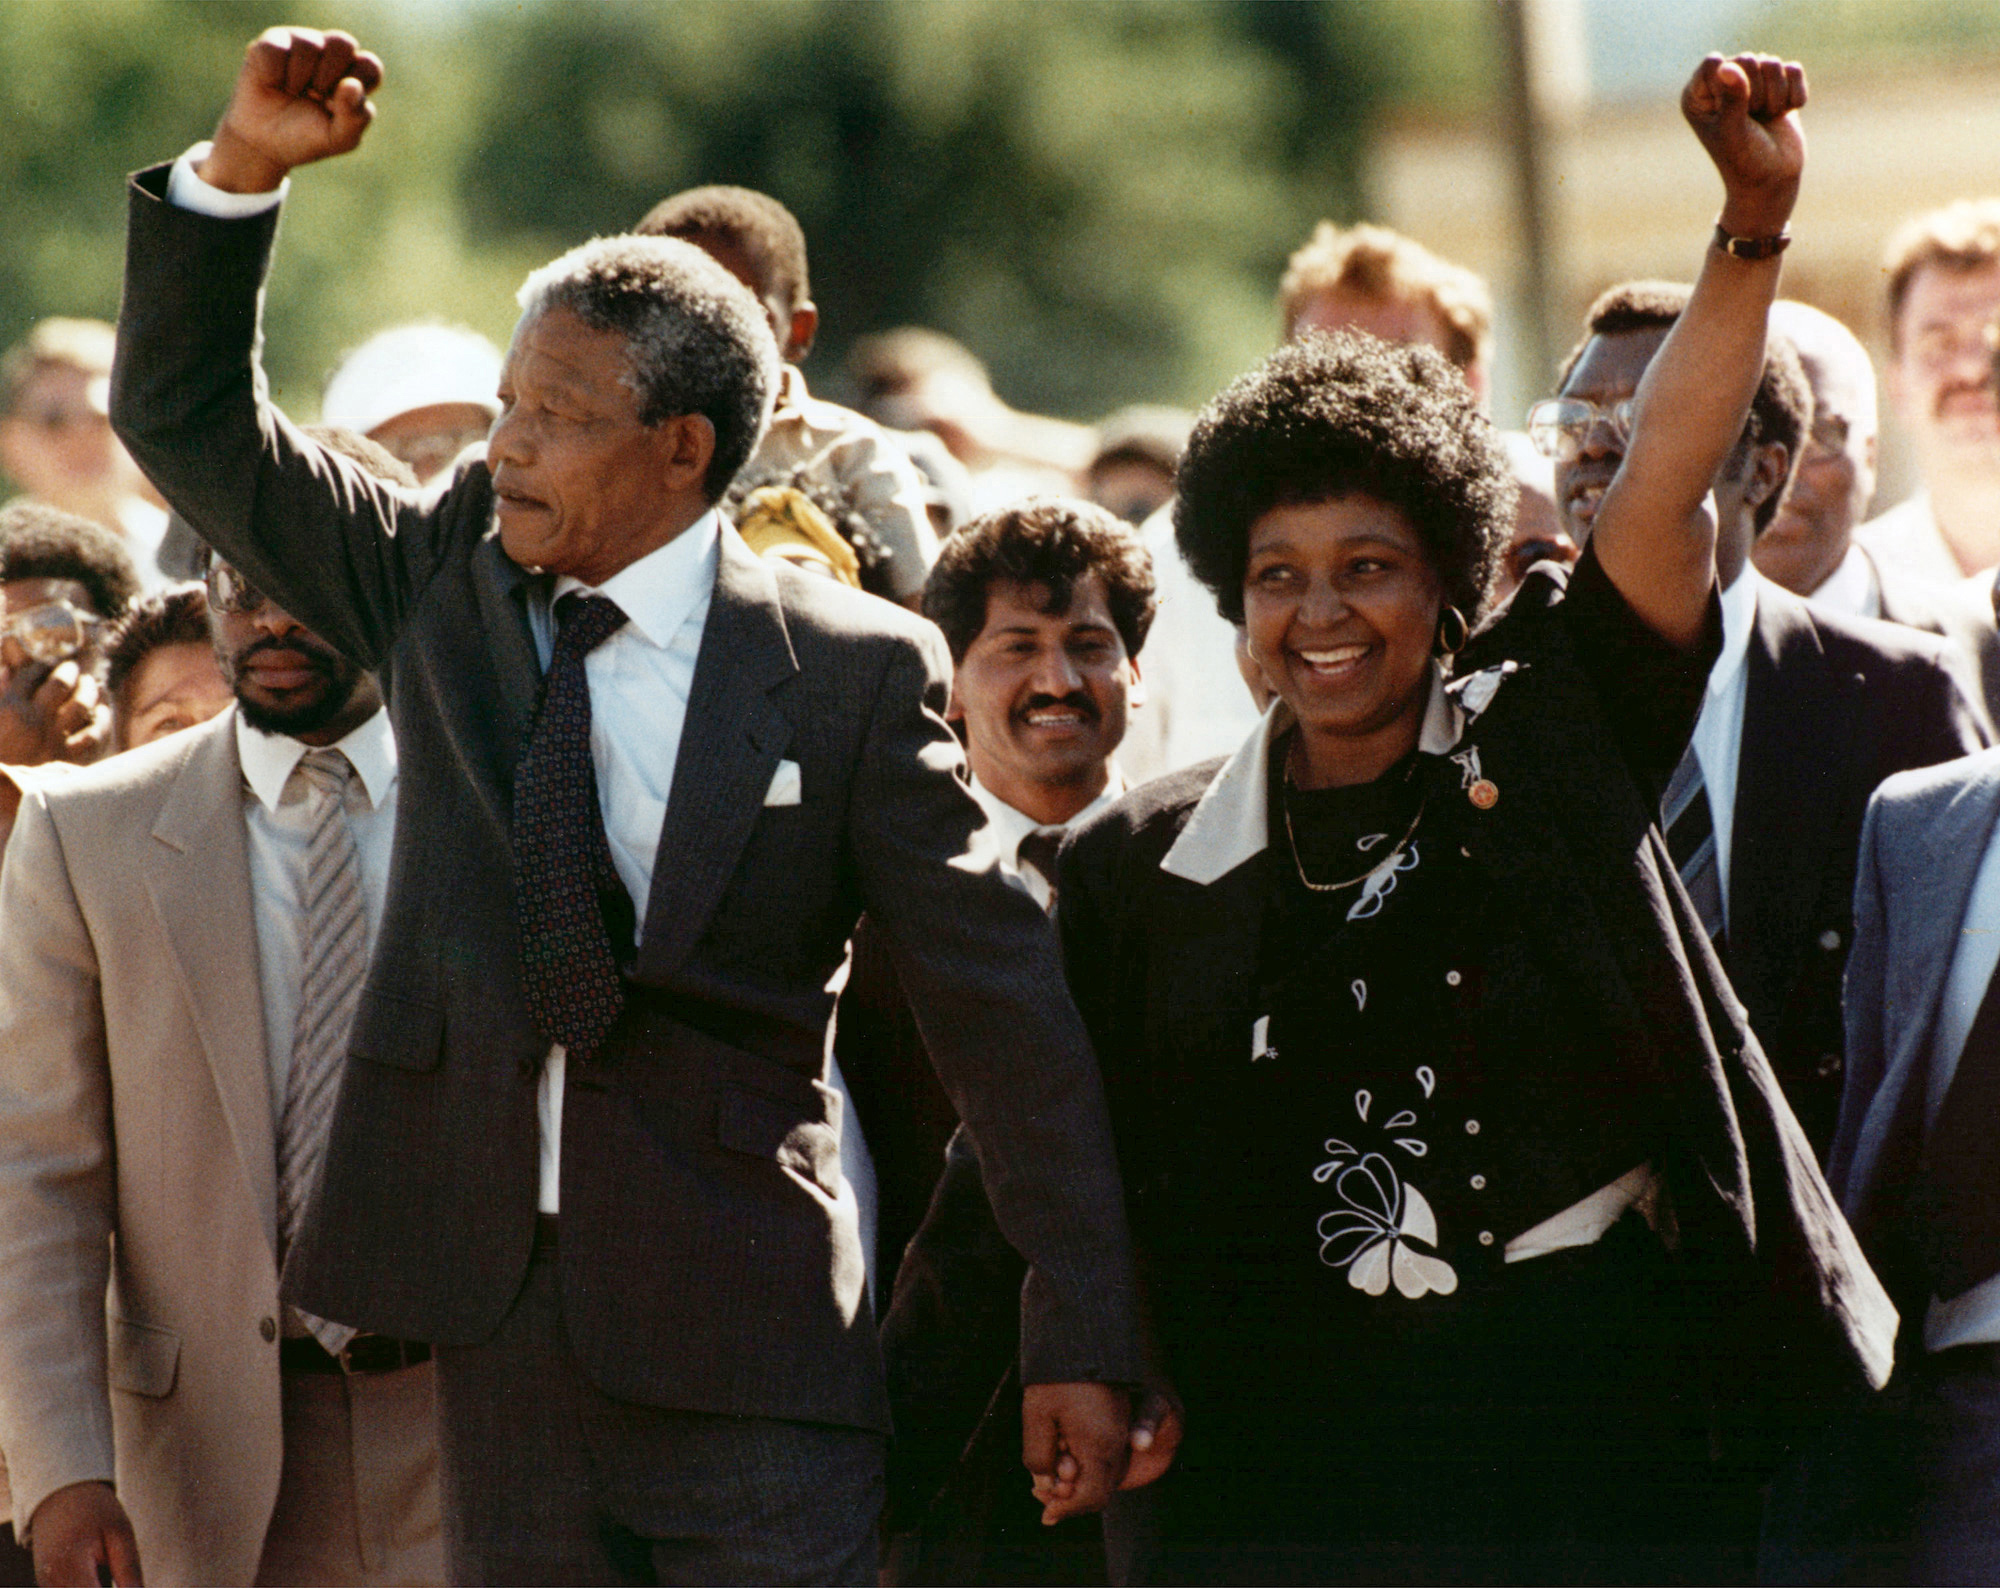 Mandela walks with his wife Winnie after being released from prison, Feb. 11, 1990.